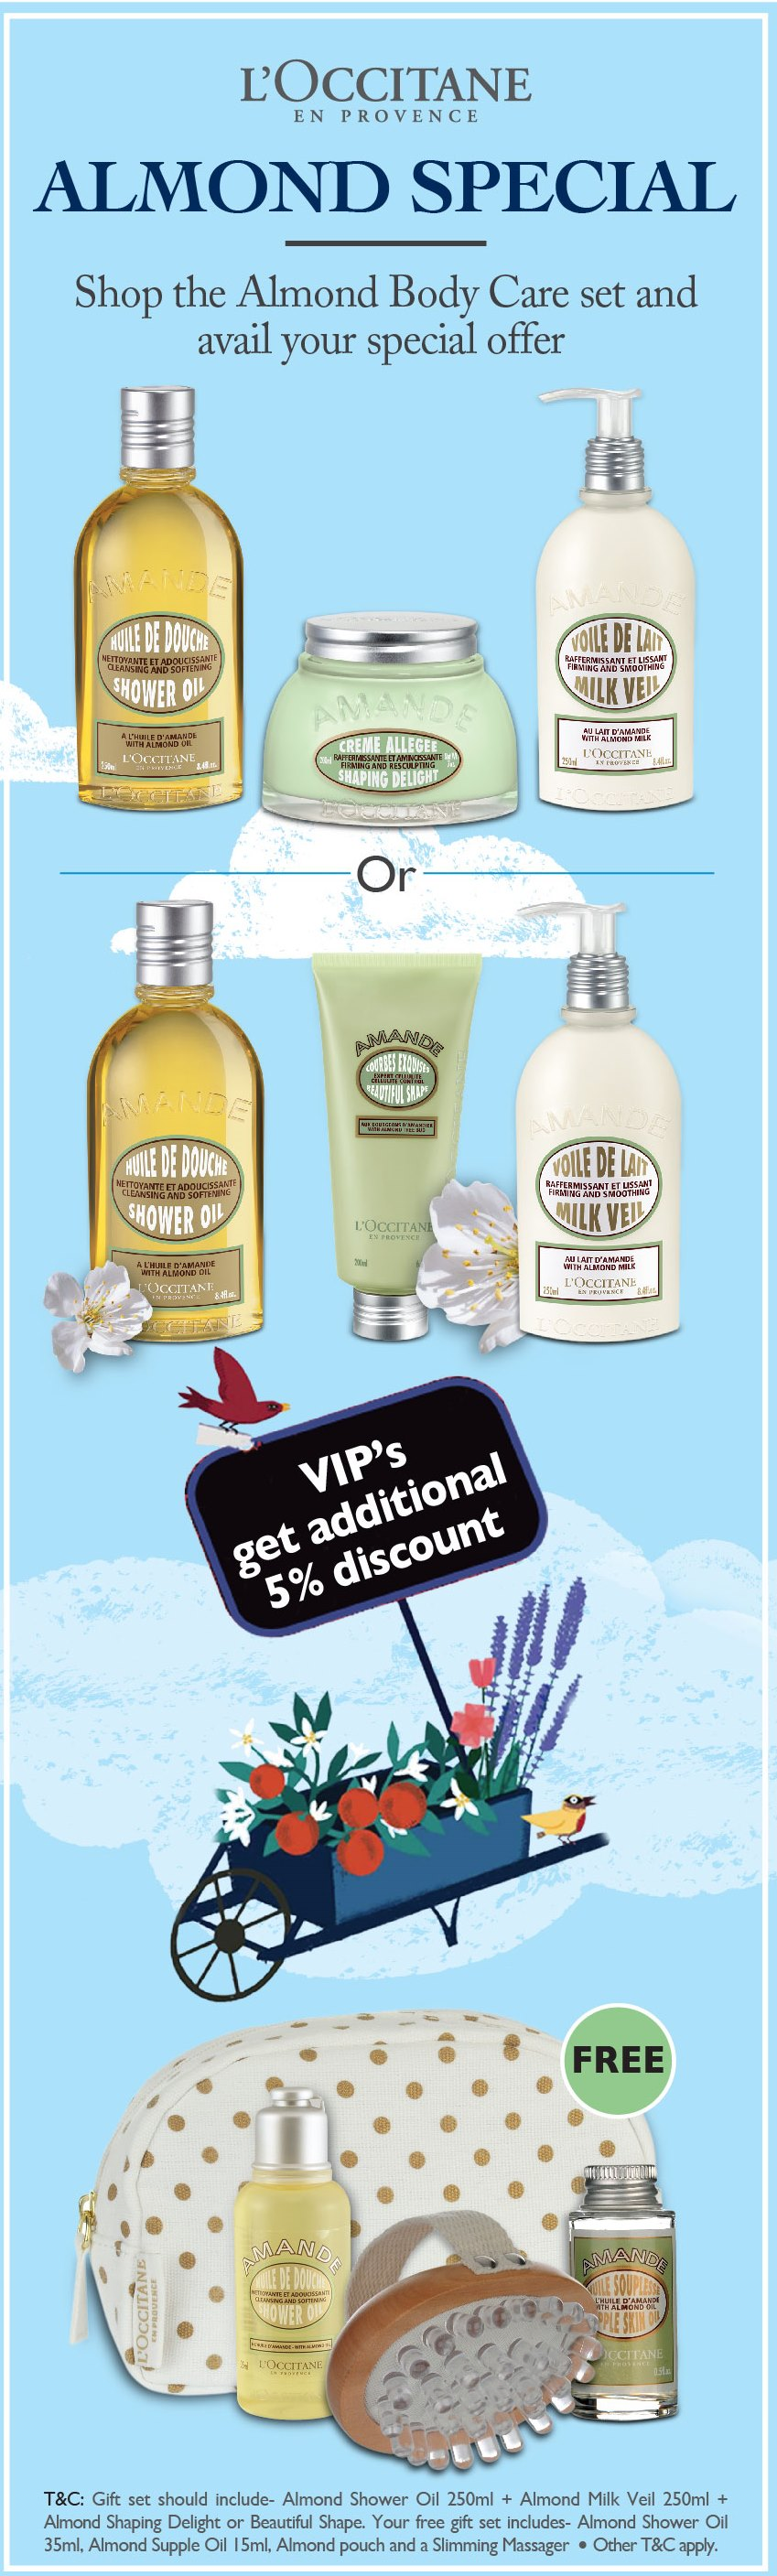 Almond VIP Gifts offer